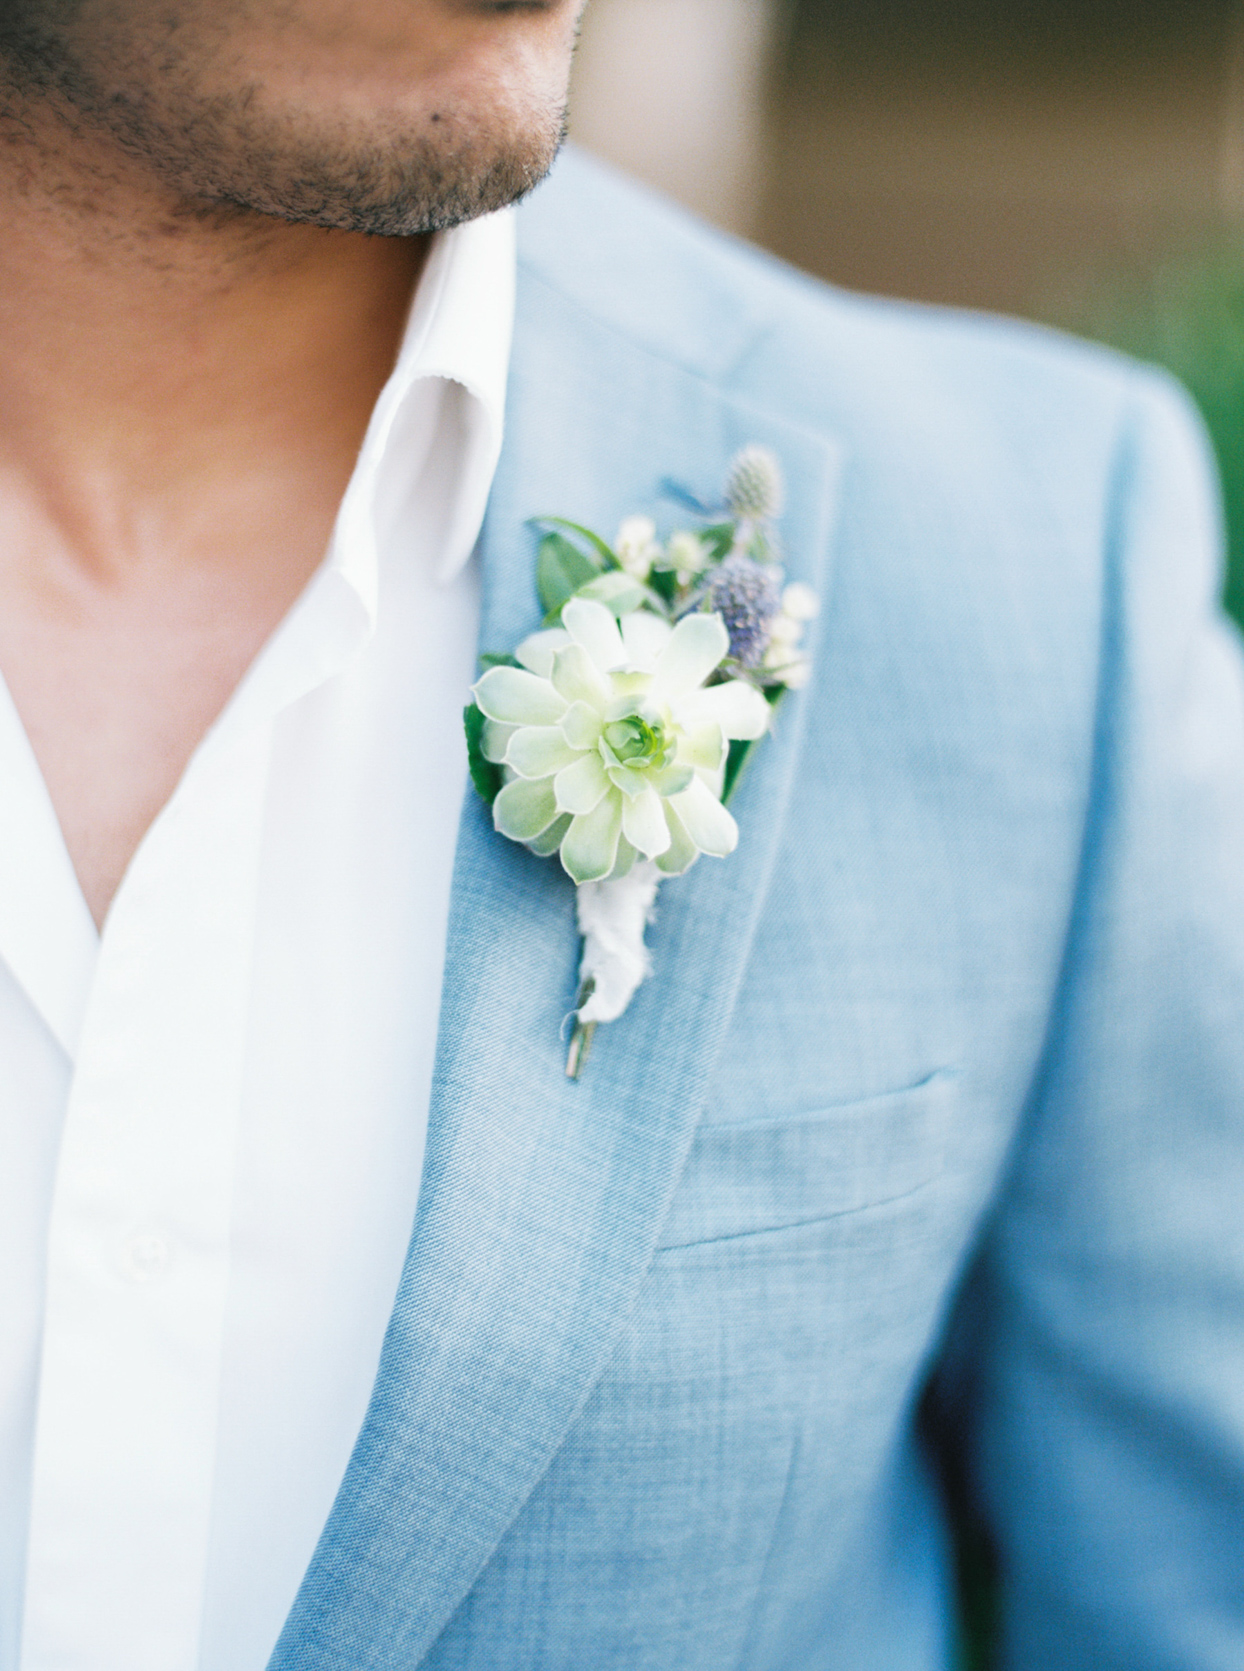 white boutonniere on groom's light blue suit